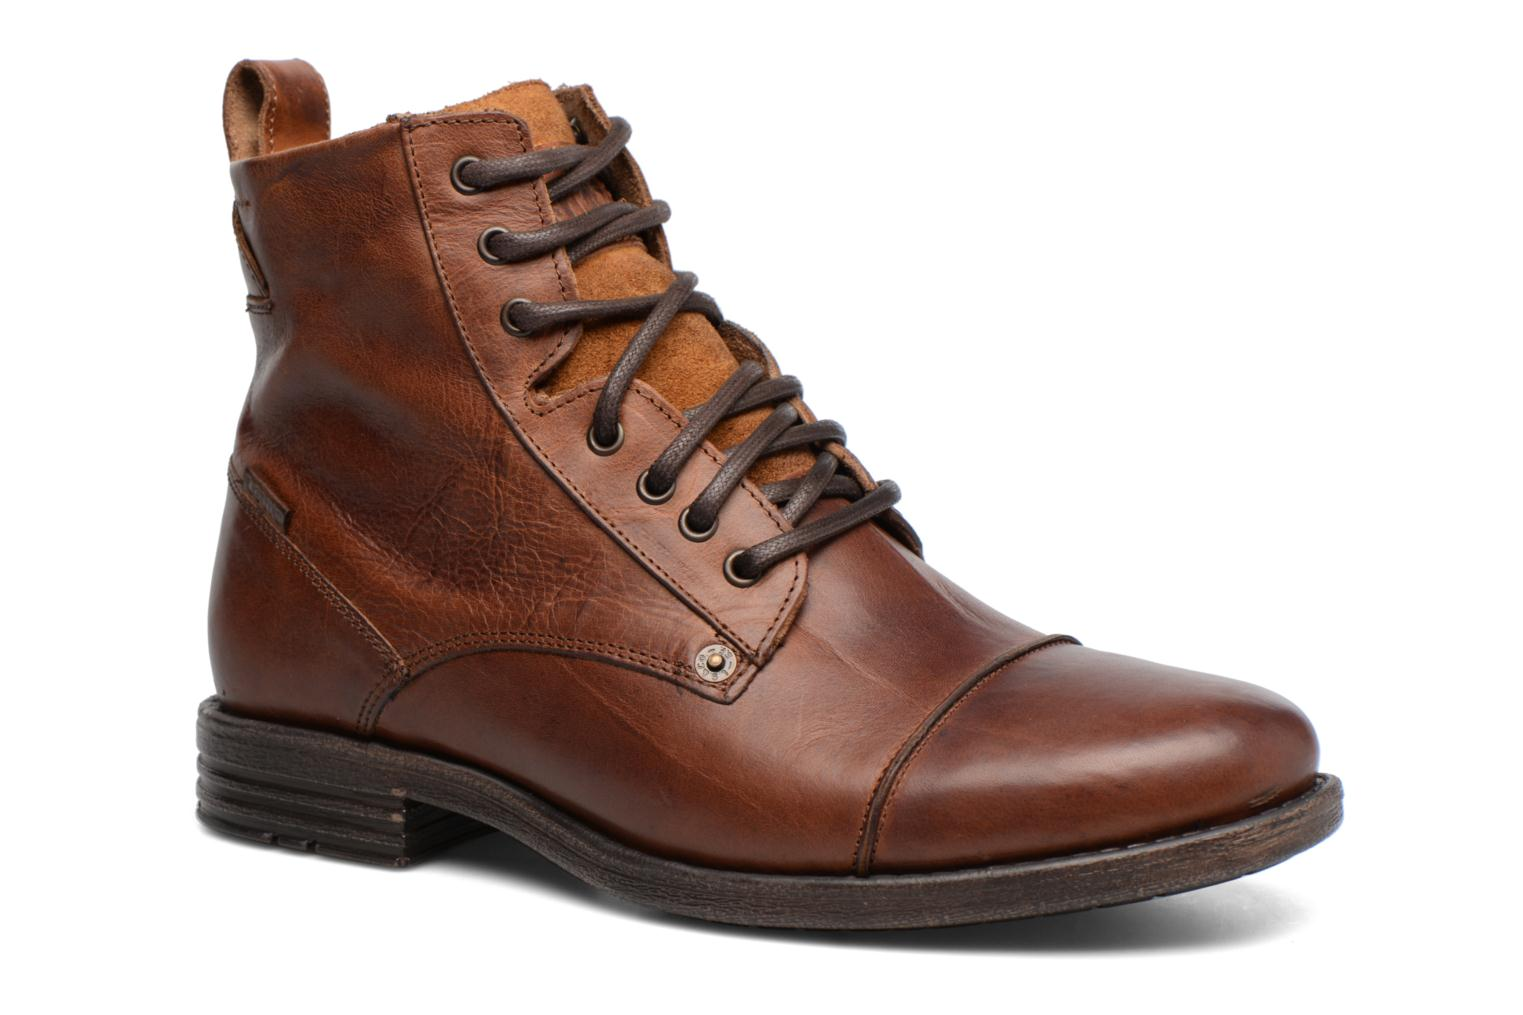 Emerson Lace Up Medium Brown